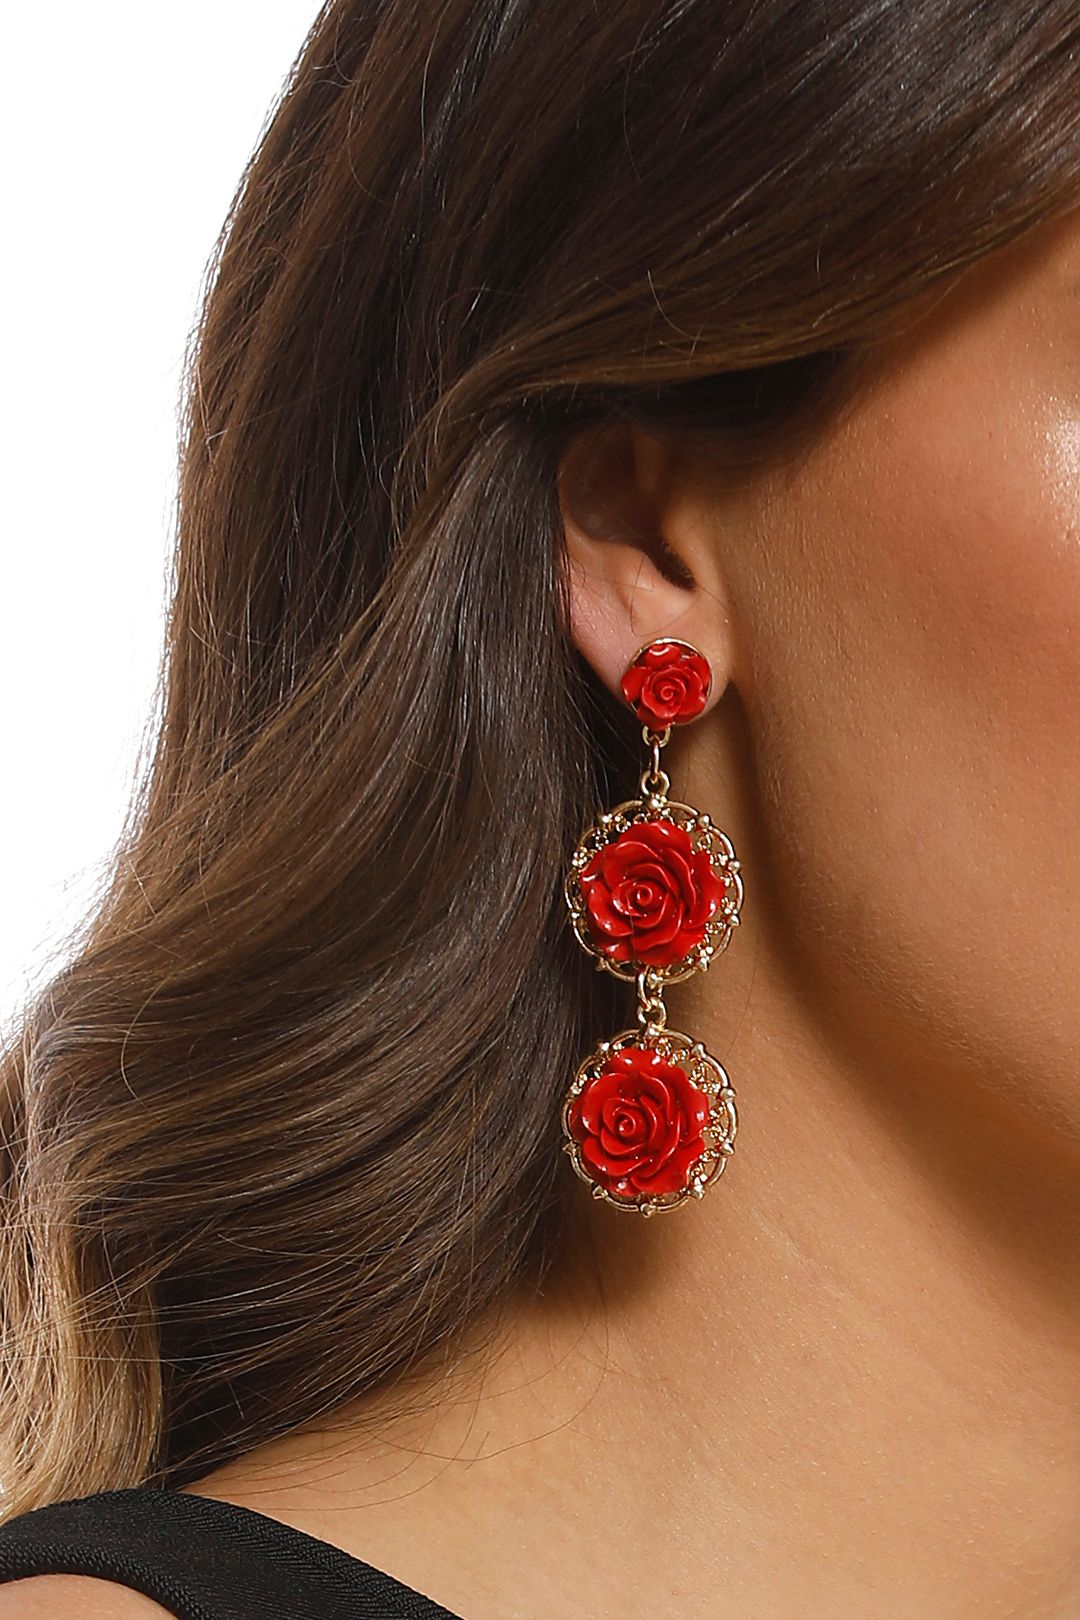 Adorne - Rose Queen Earrings - Red Gold - Product